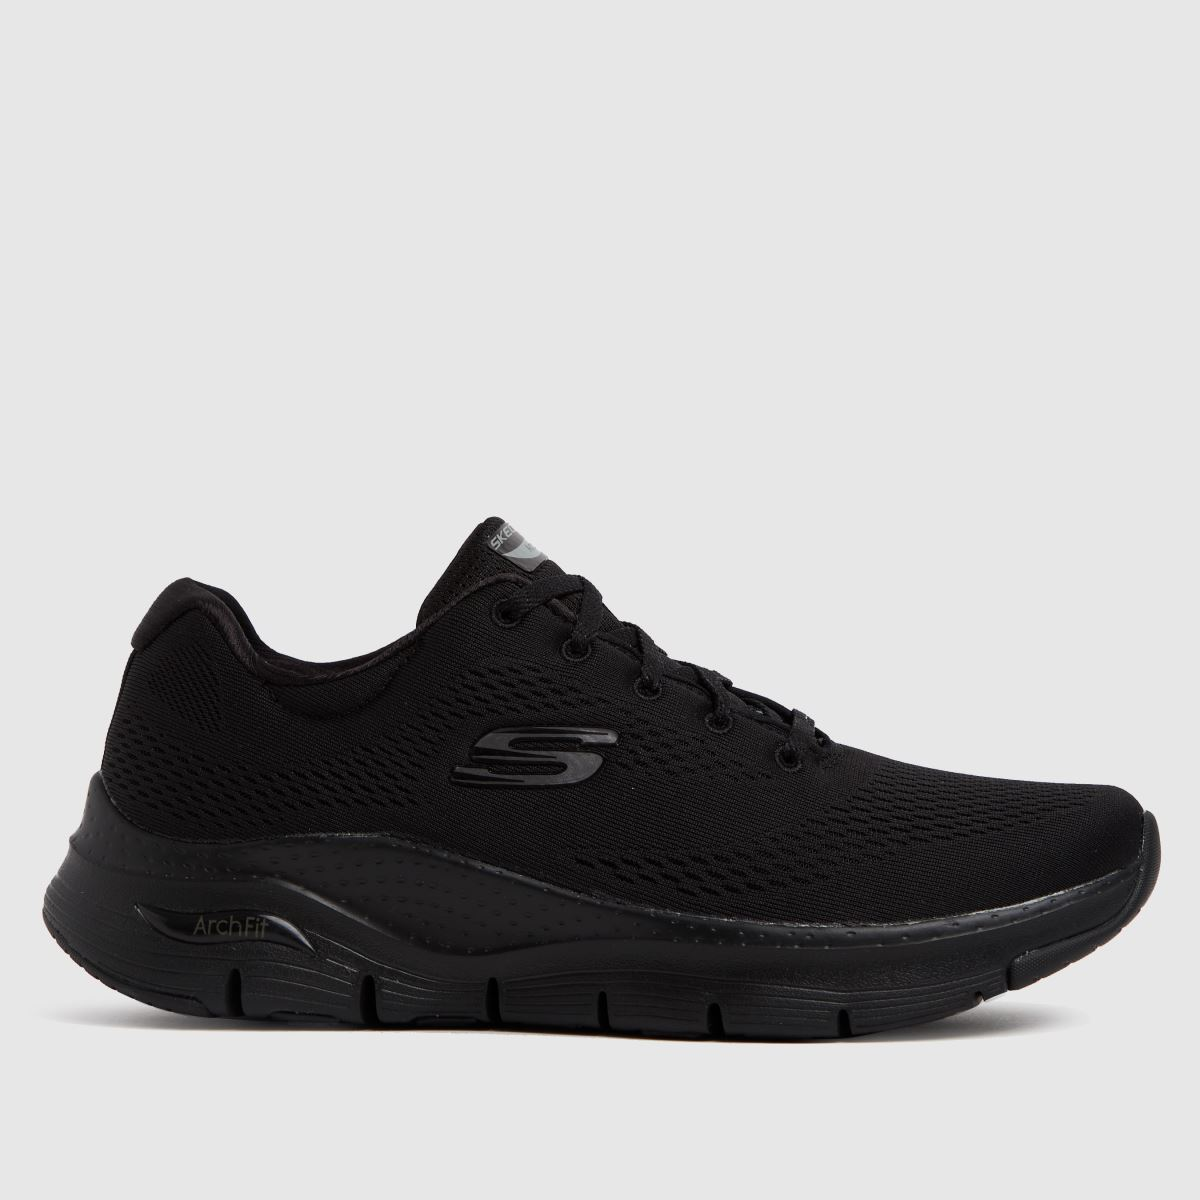 SKECHERS Black Arch Fit Big Appeal Trainers